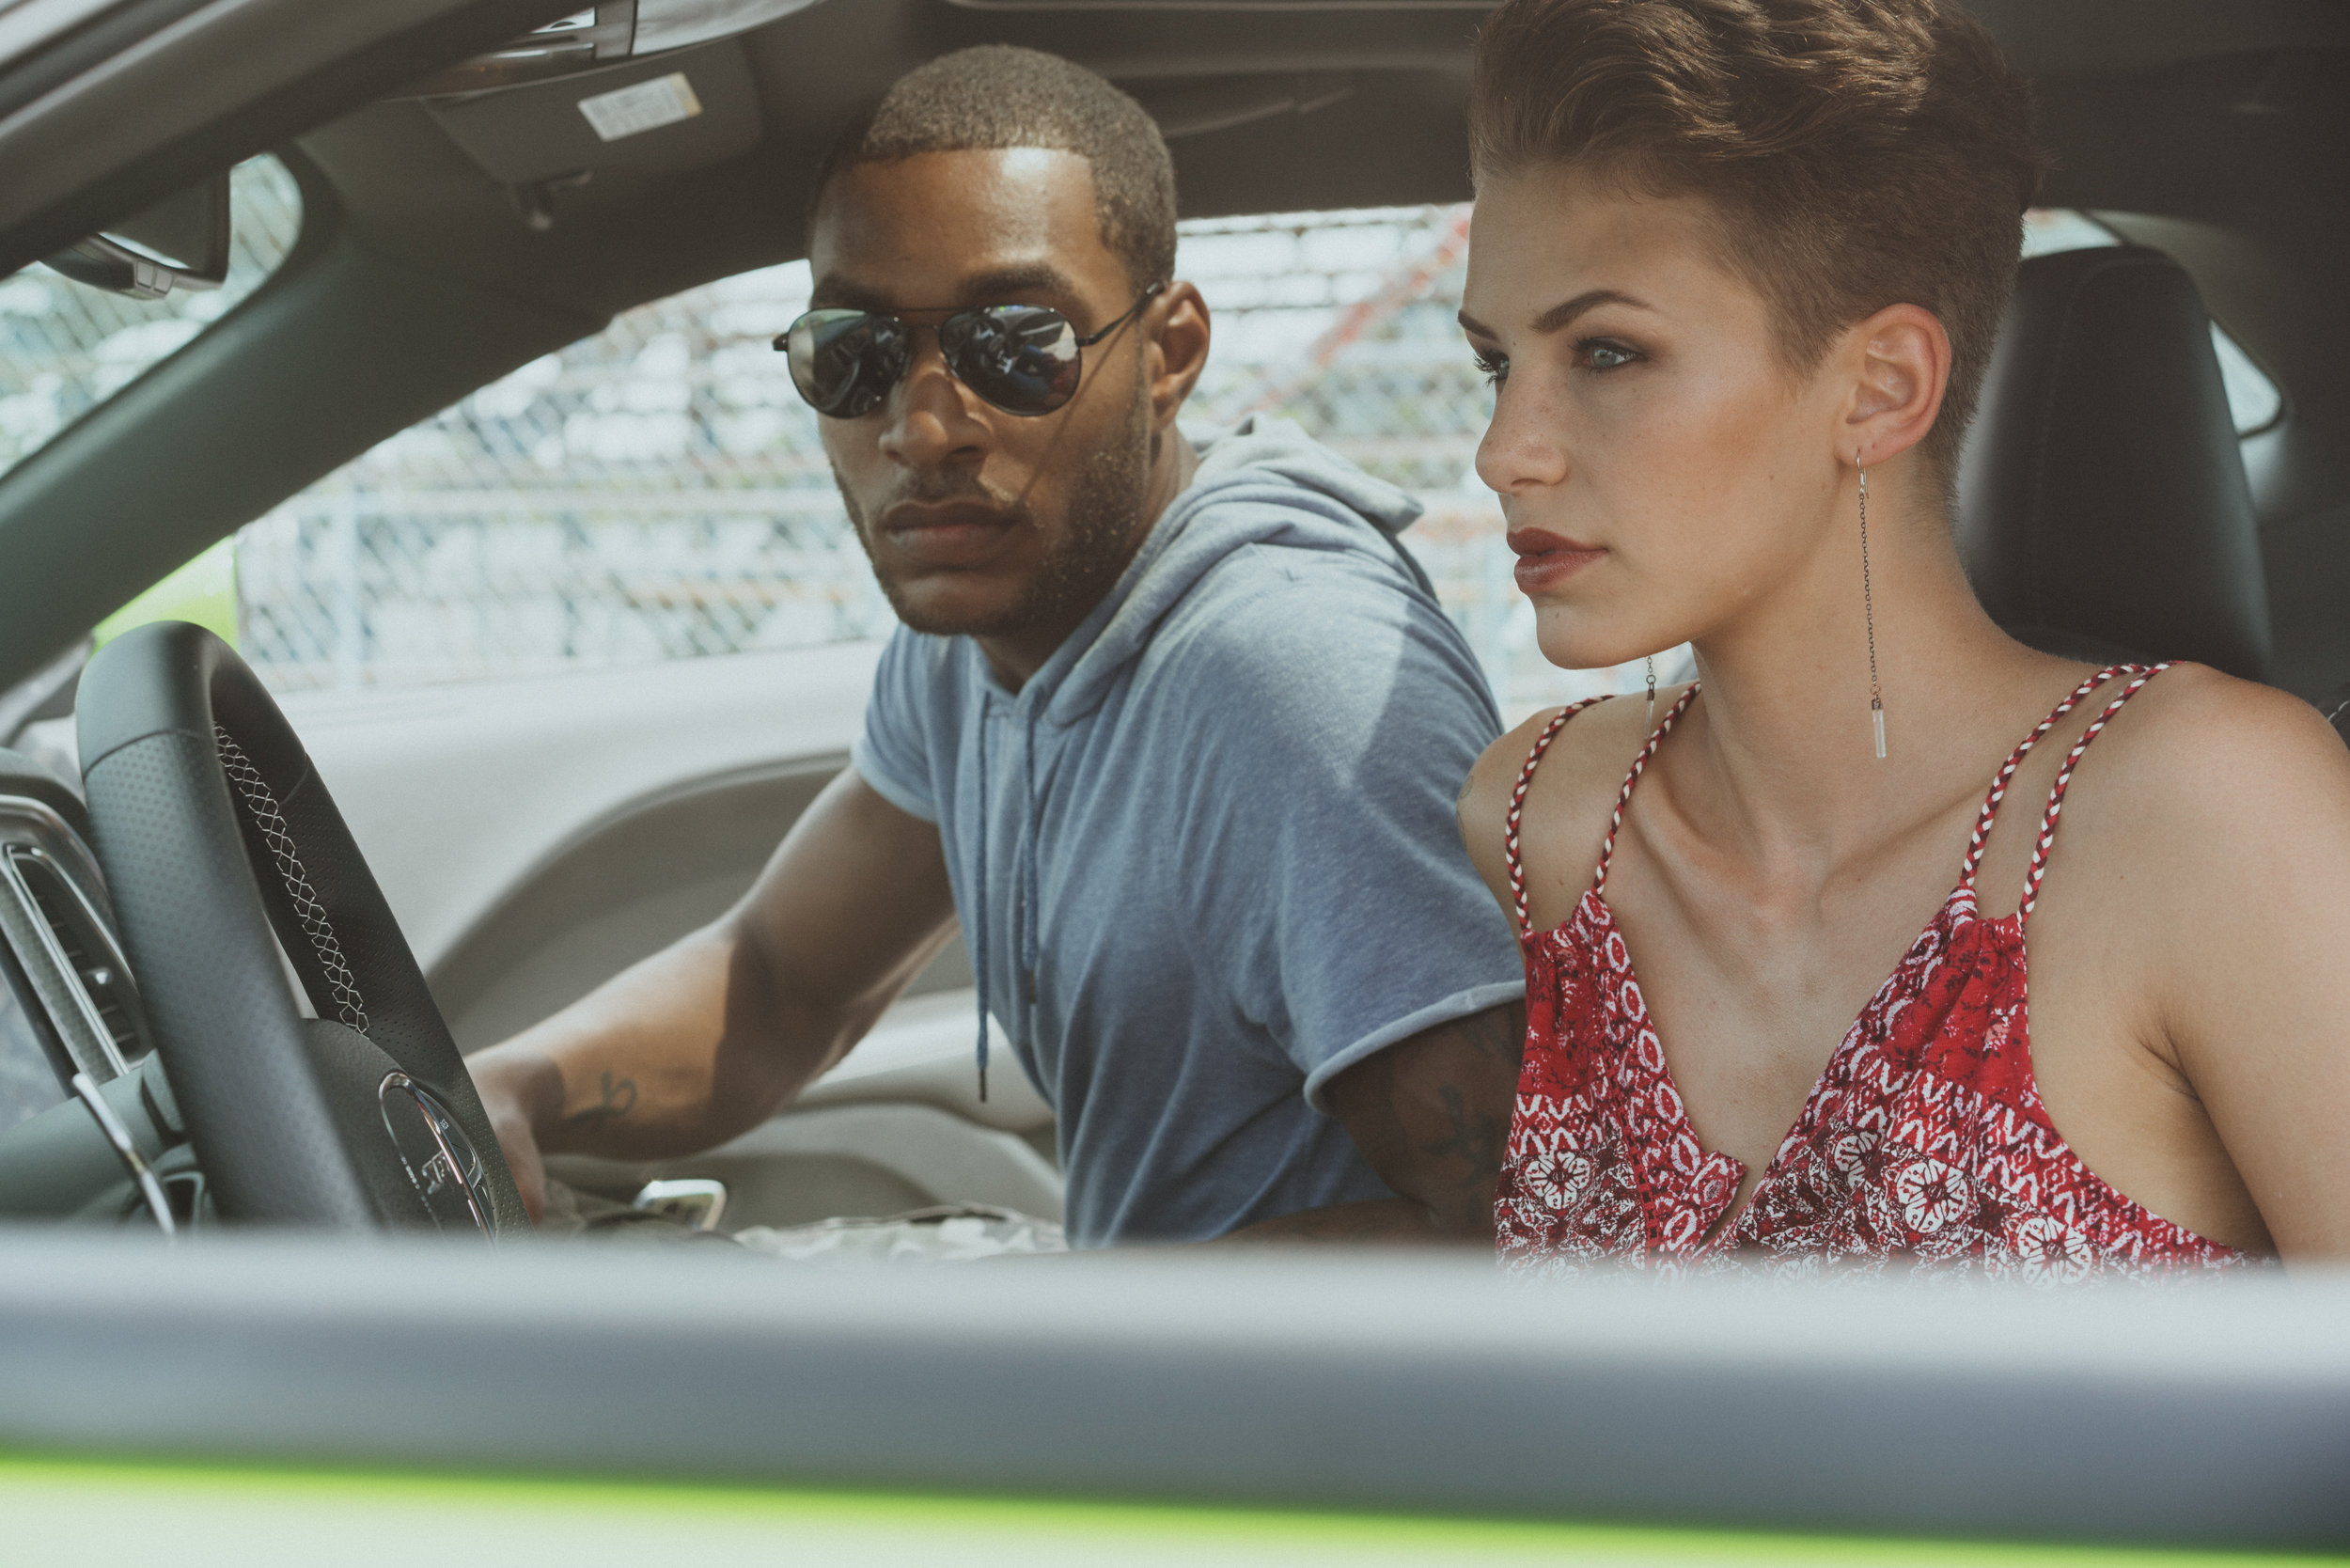 jasmine & Veon green car, red scarf top_CHALLENGER_SRT_HELLCAT_GREEN_INTERIOR_DSC9771.jpg